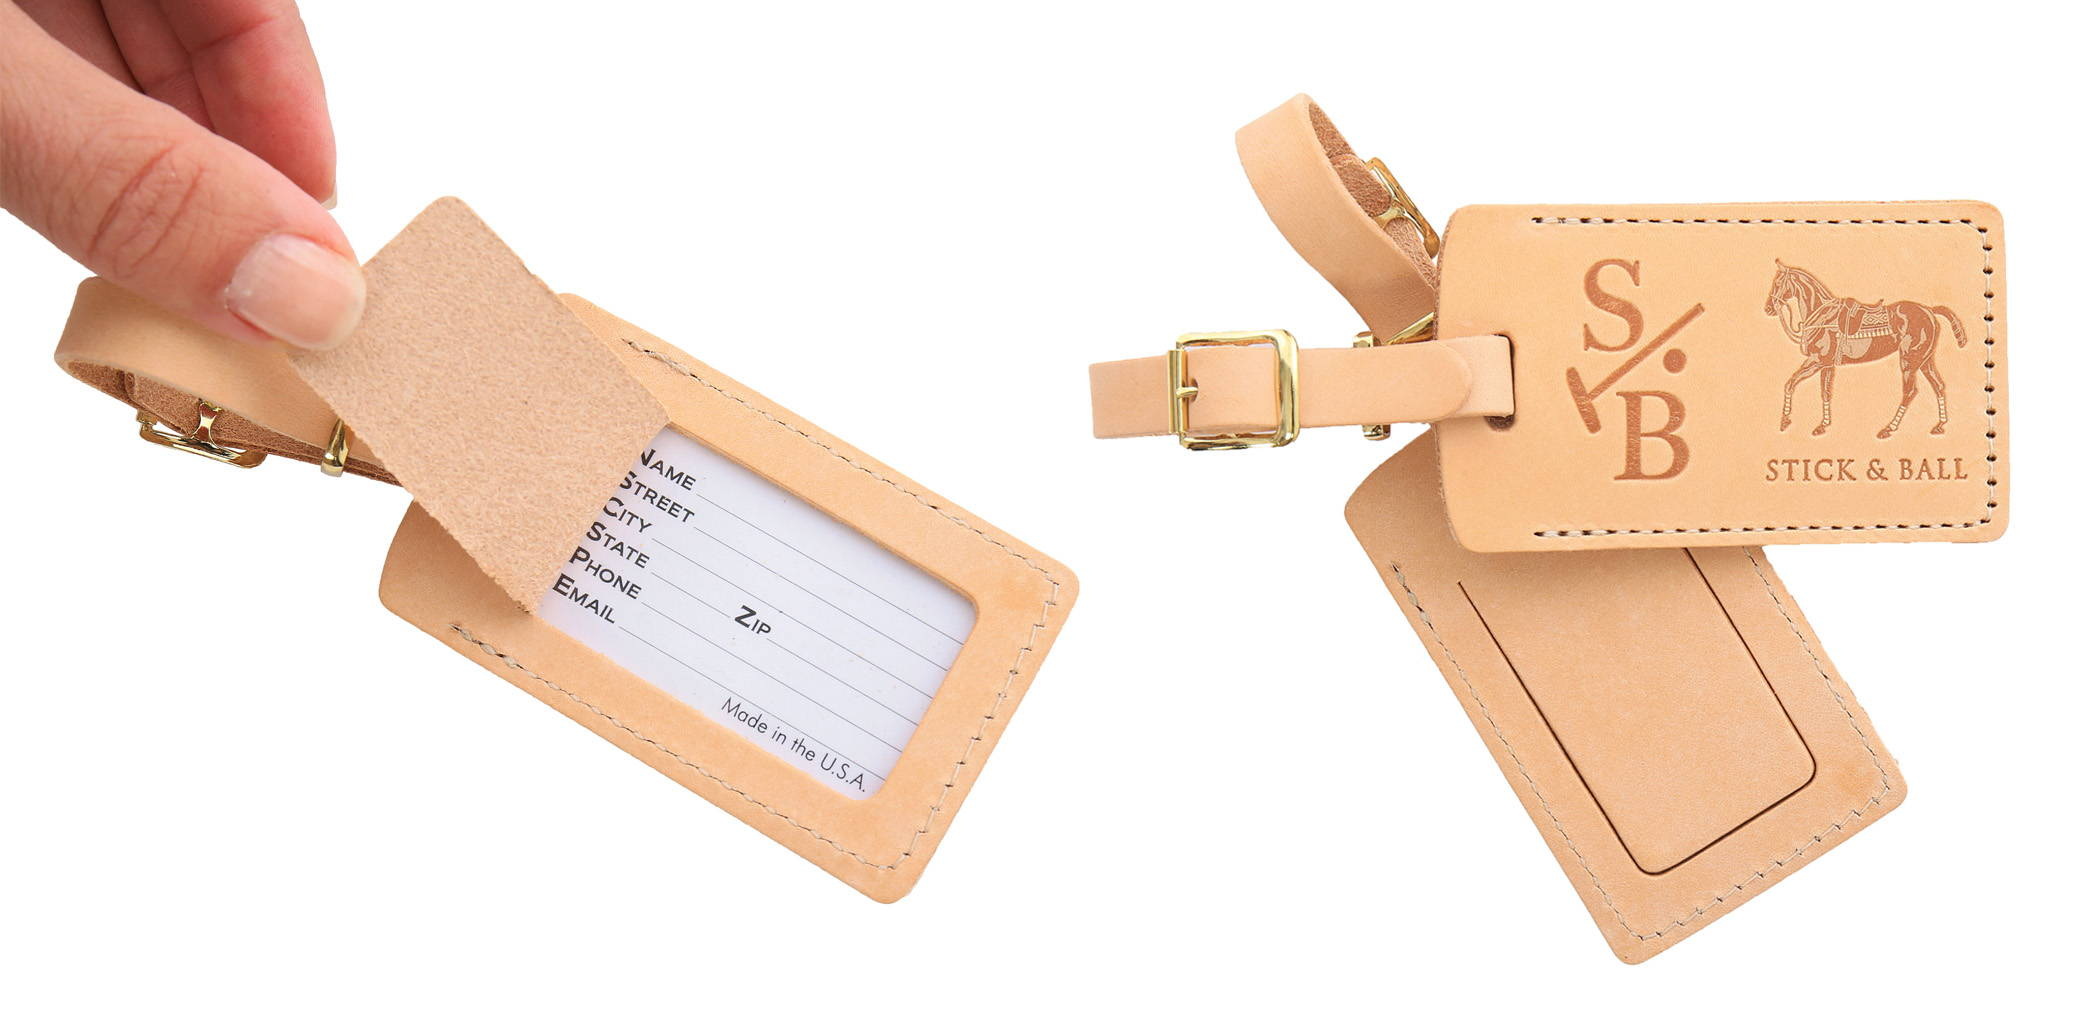 Stick & Ball's equestrian-inspired Leather Luggage Tag with Polo Pony